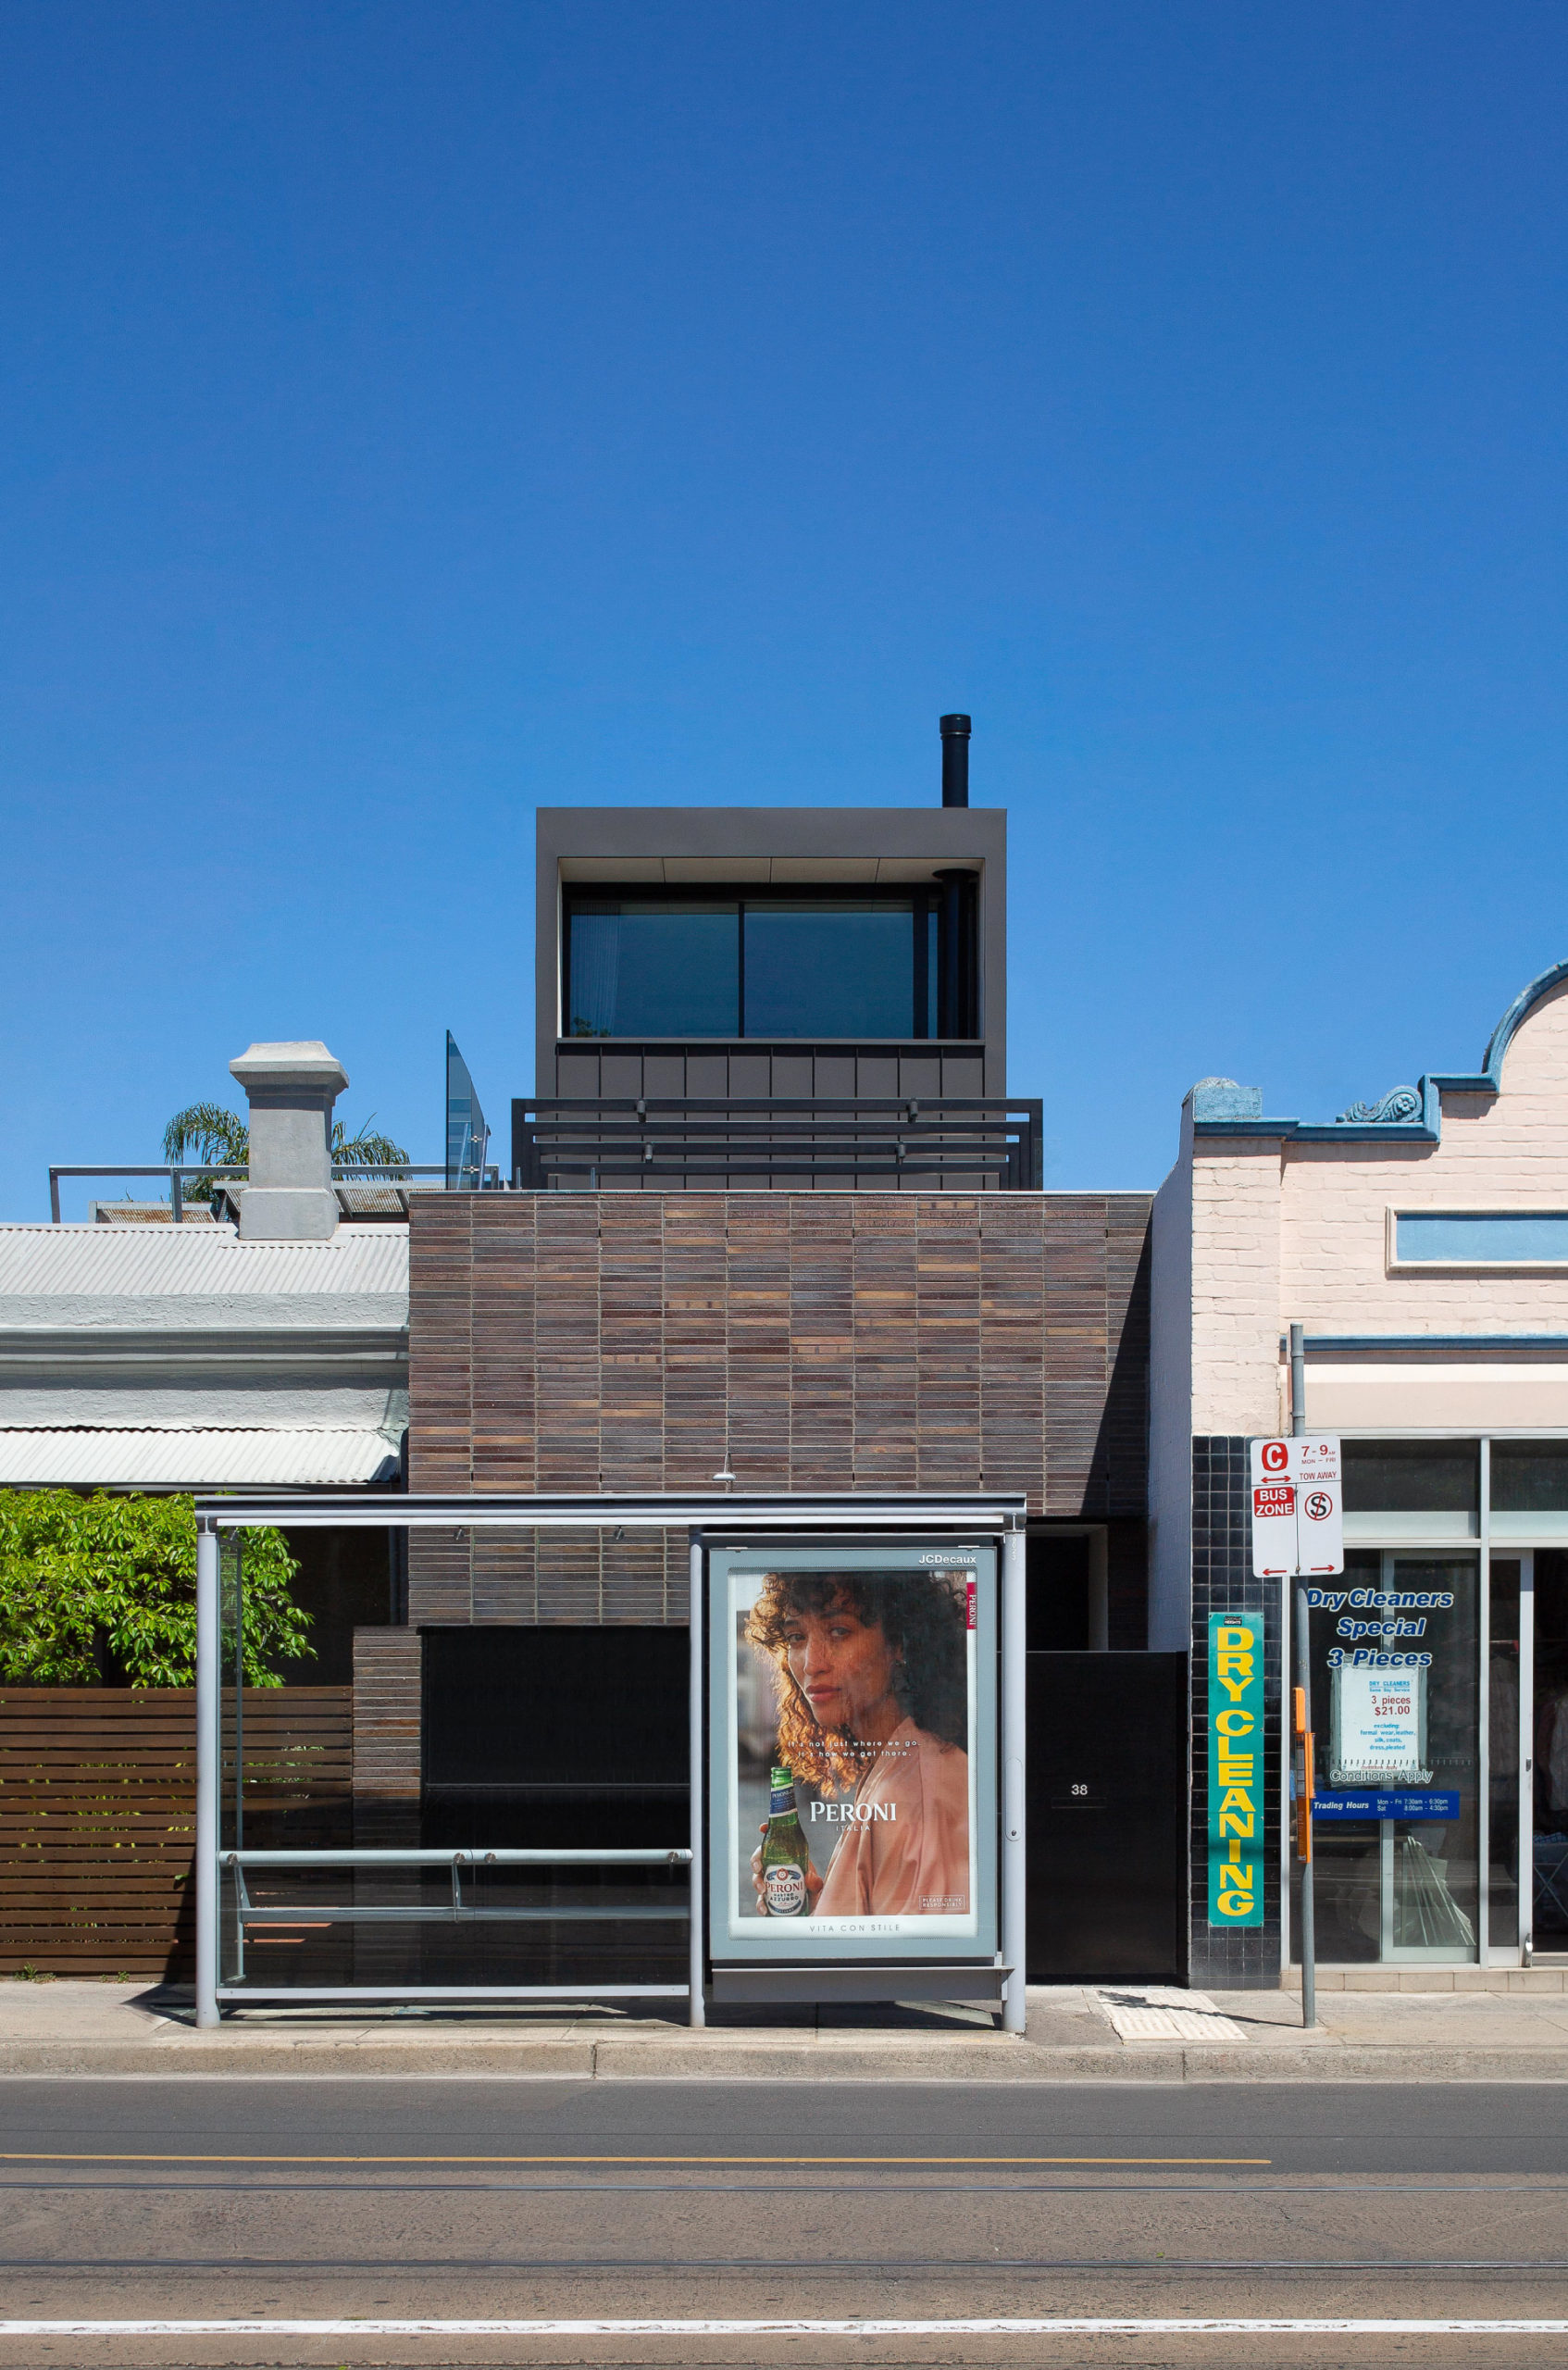 Cera Stribley Architecture Interior Design Commercial Road exterior street view